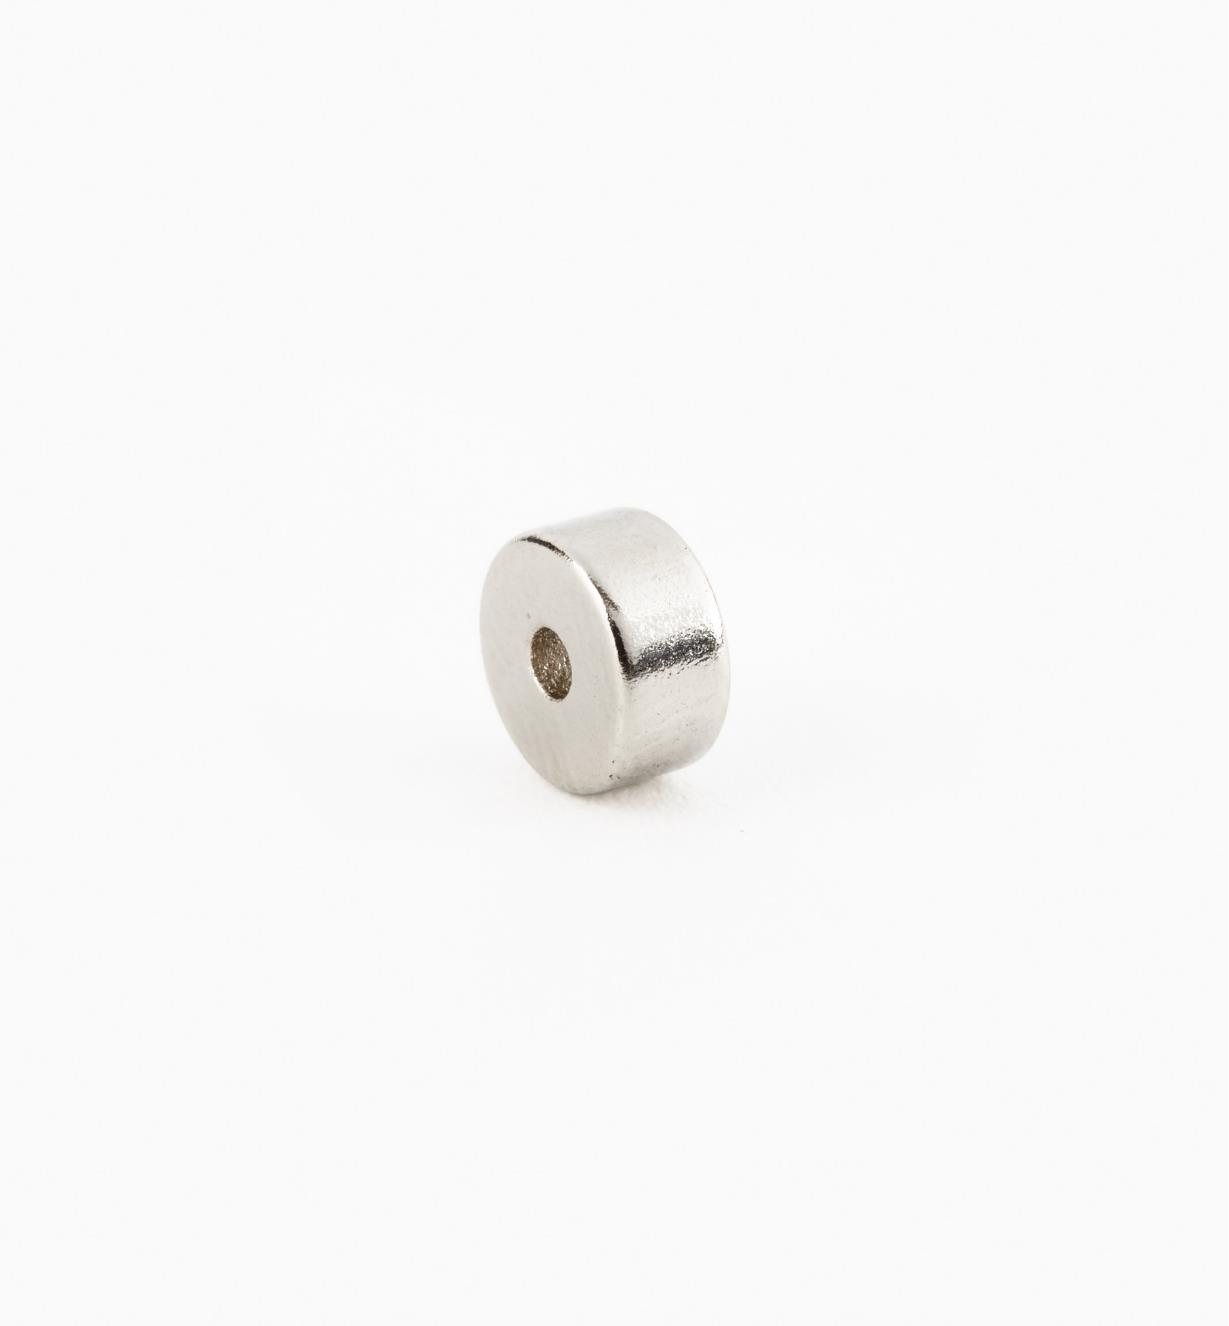 "99K3701 - 1/4"" x 1/8"" (1/16"") Ring Magnet"